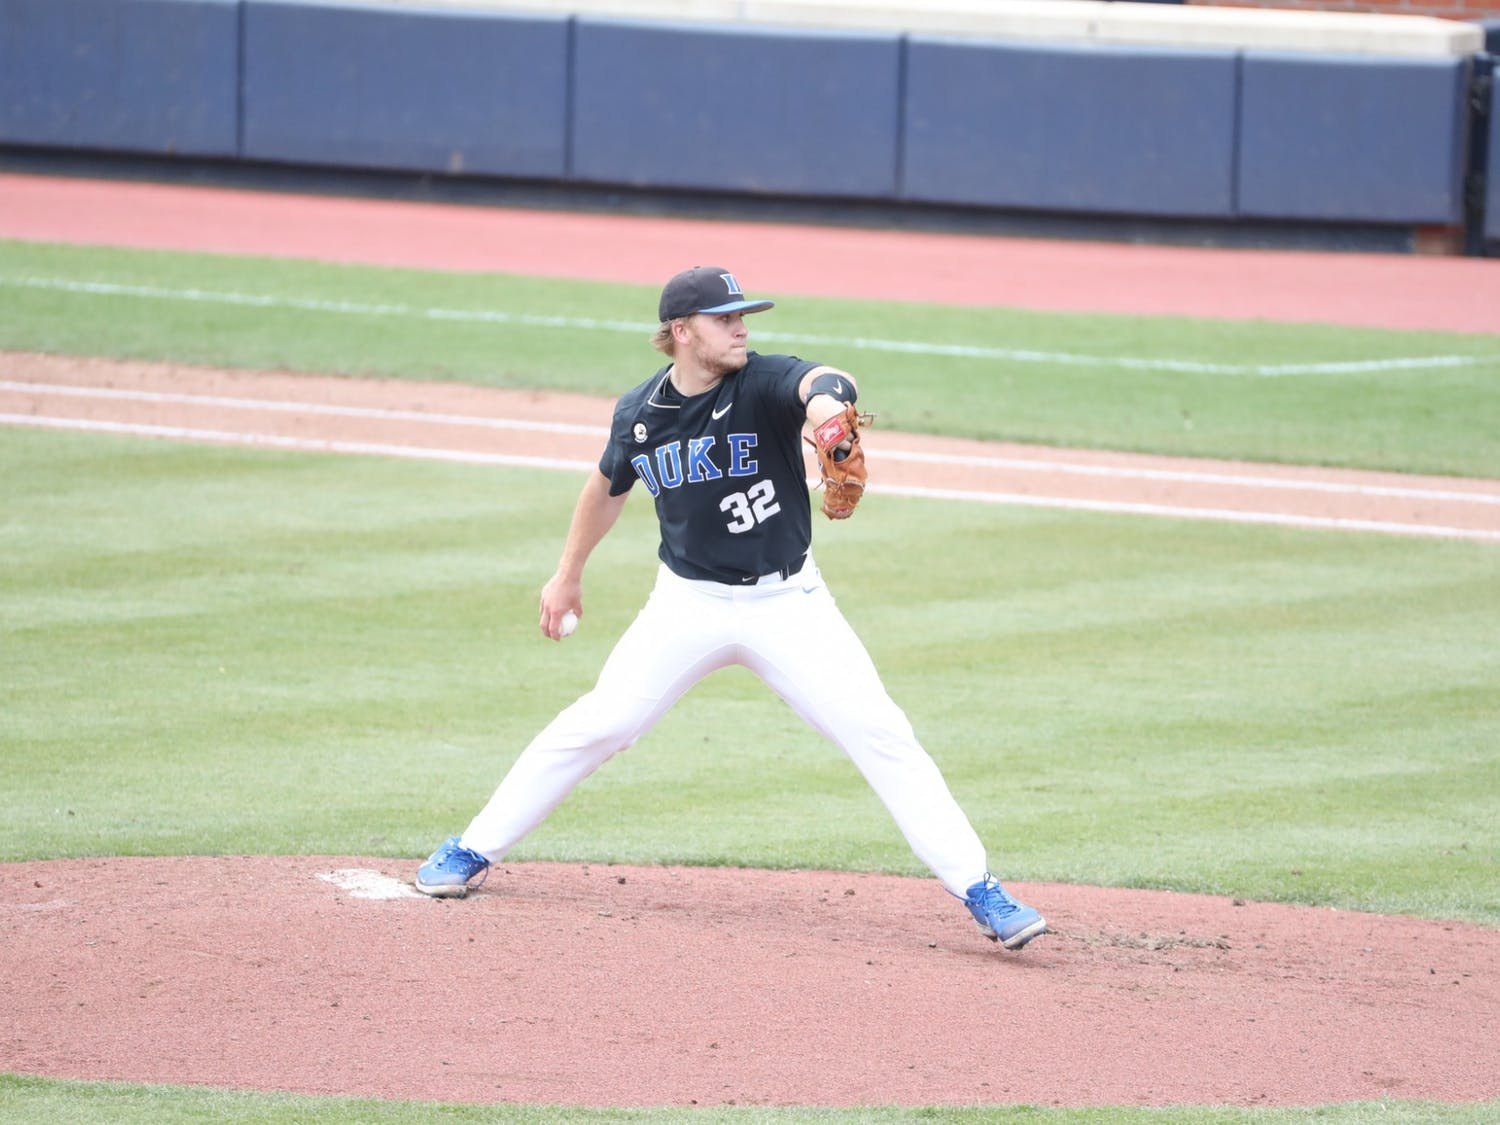 Duke's pitching staff, including junior Jack Carey, was inconsistent throughout the weekend slate against Virginia.